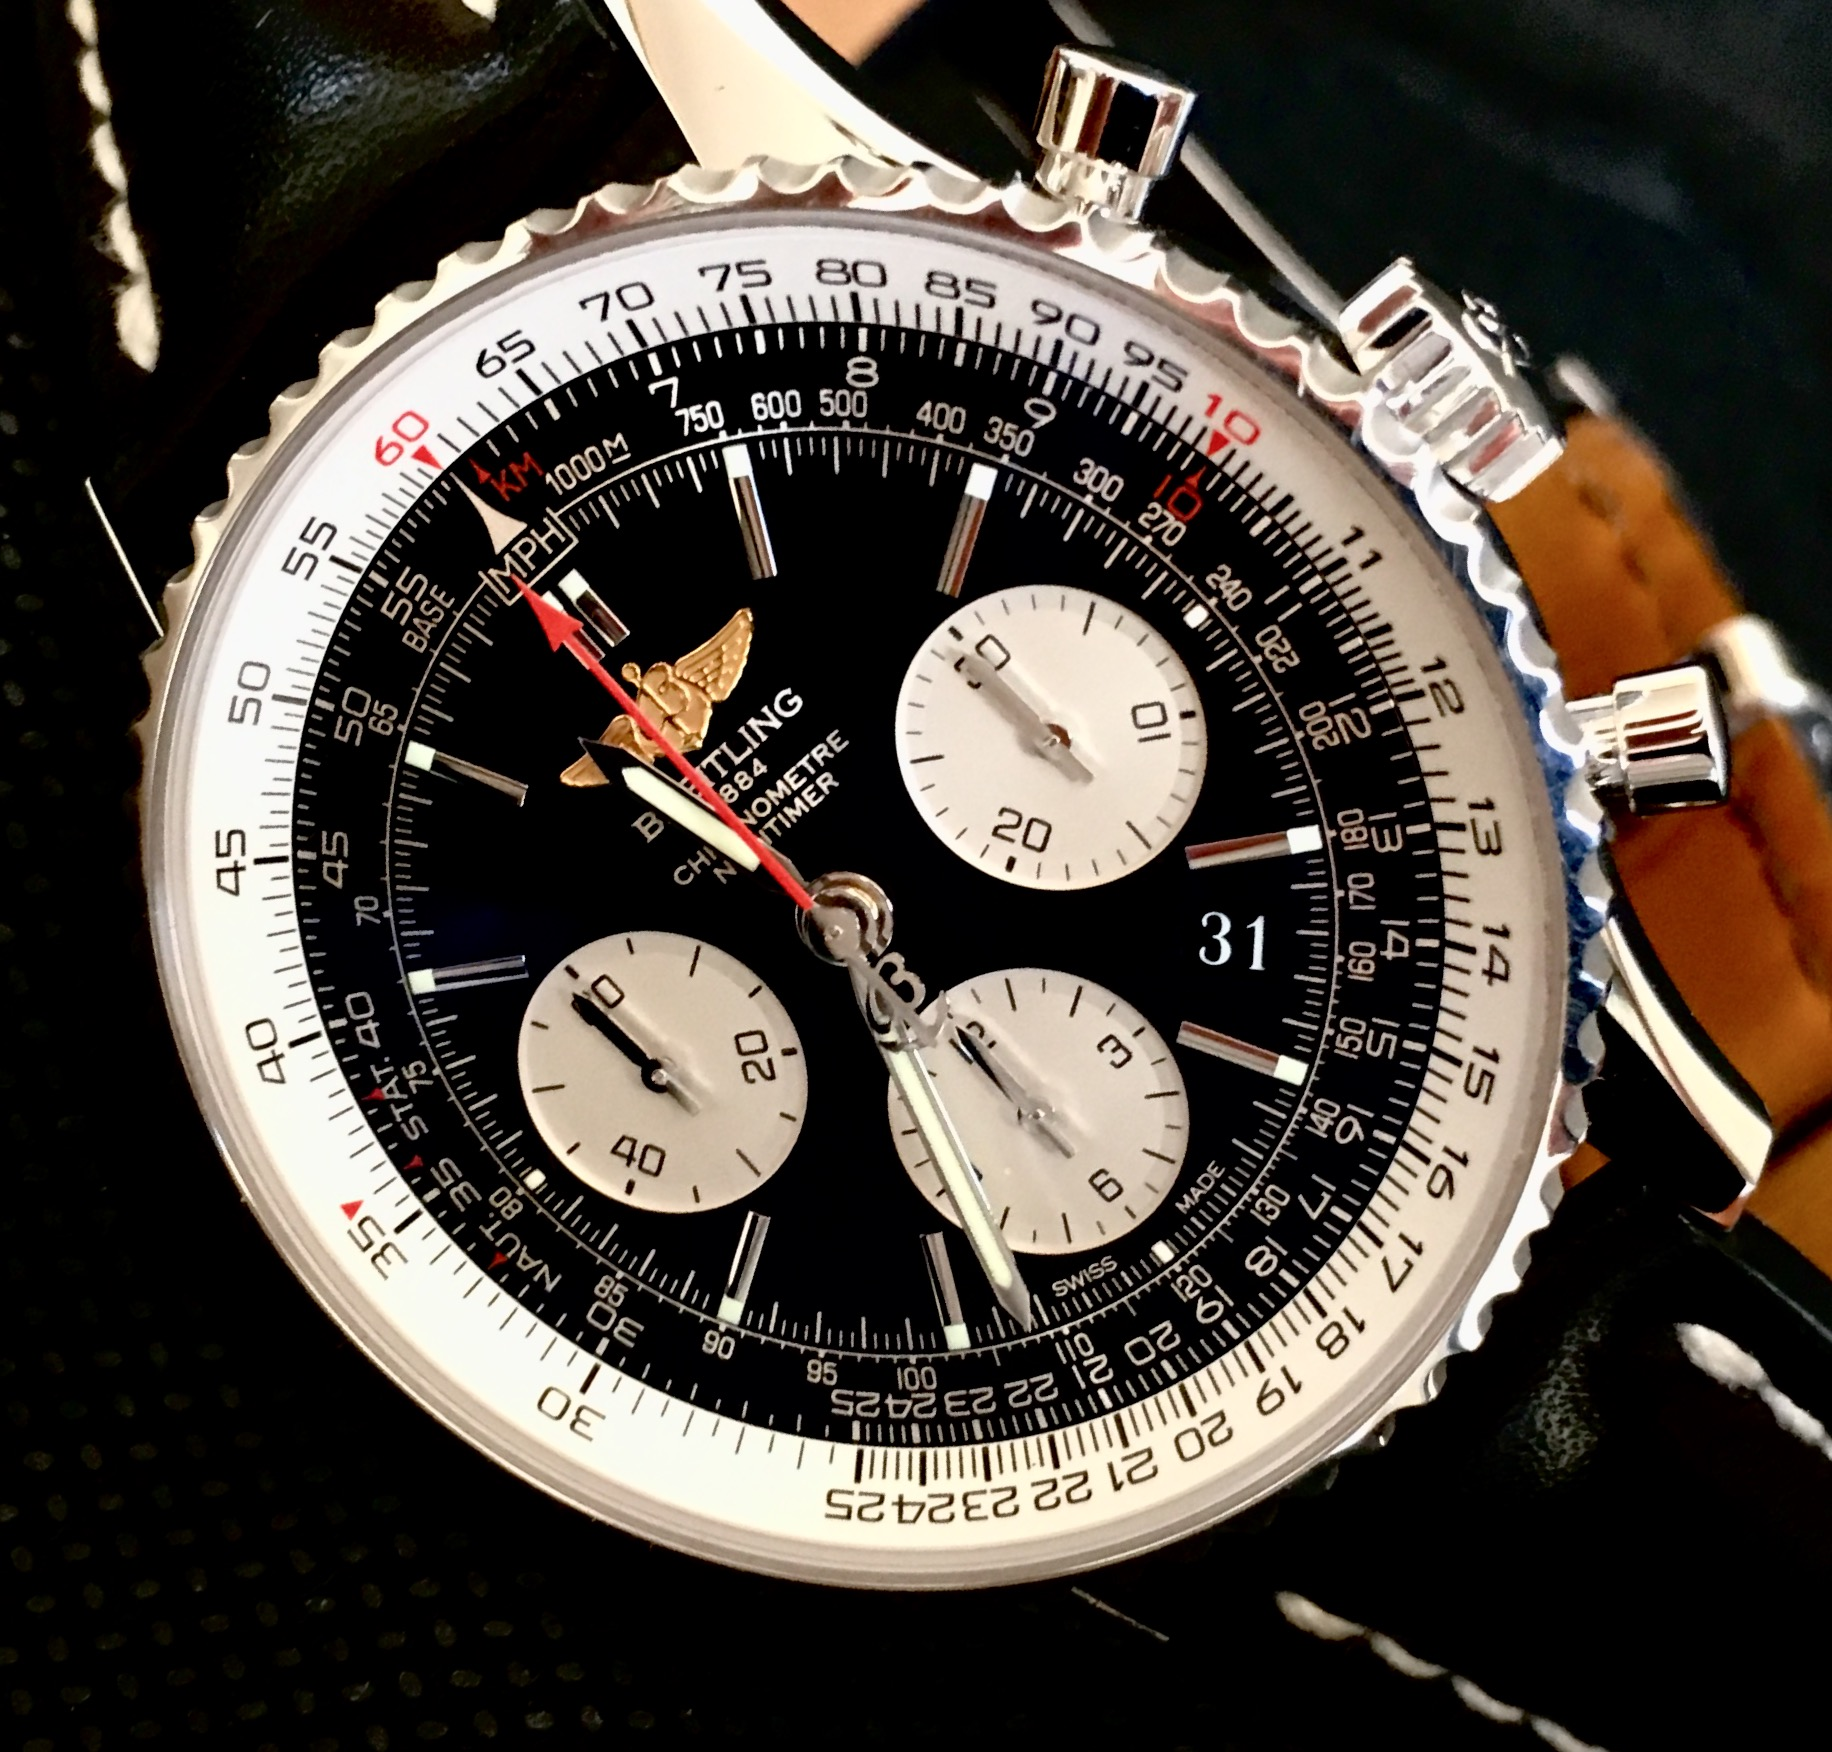 Breitling - Match amical : Cartier - Breitling - Page 3 892171image692